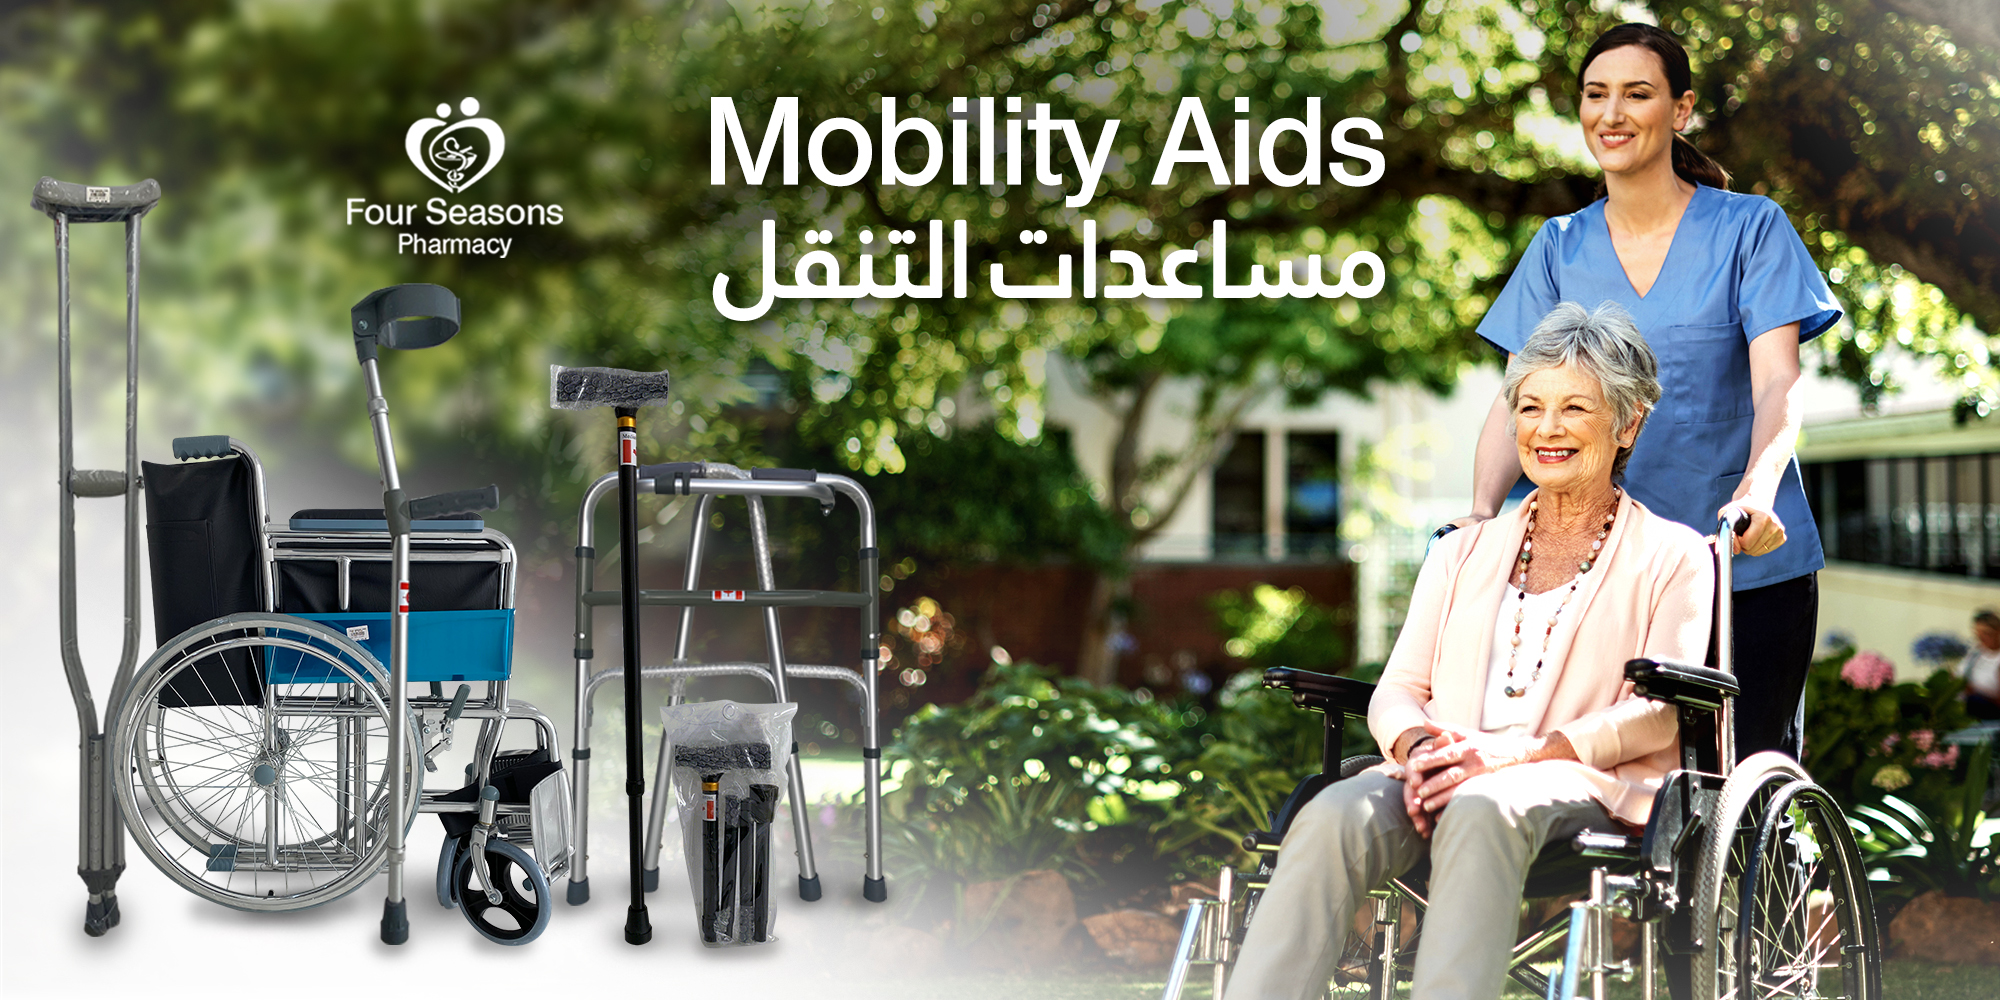 Mobility Aids at Value Prices